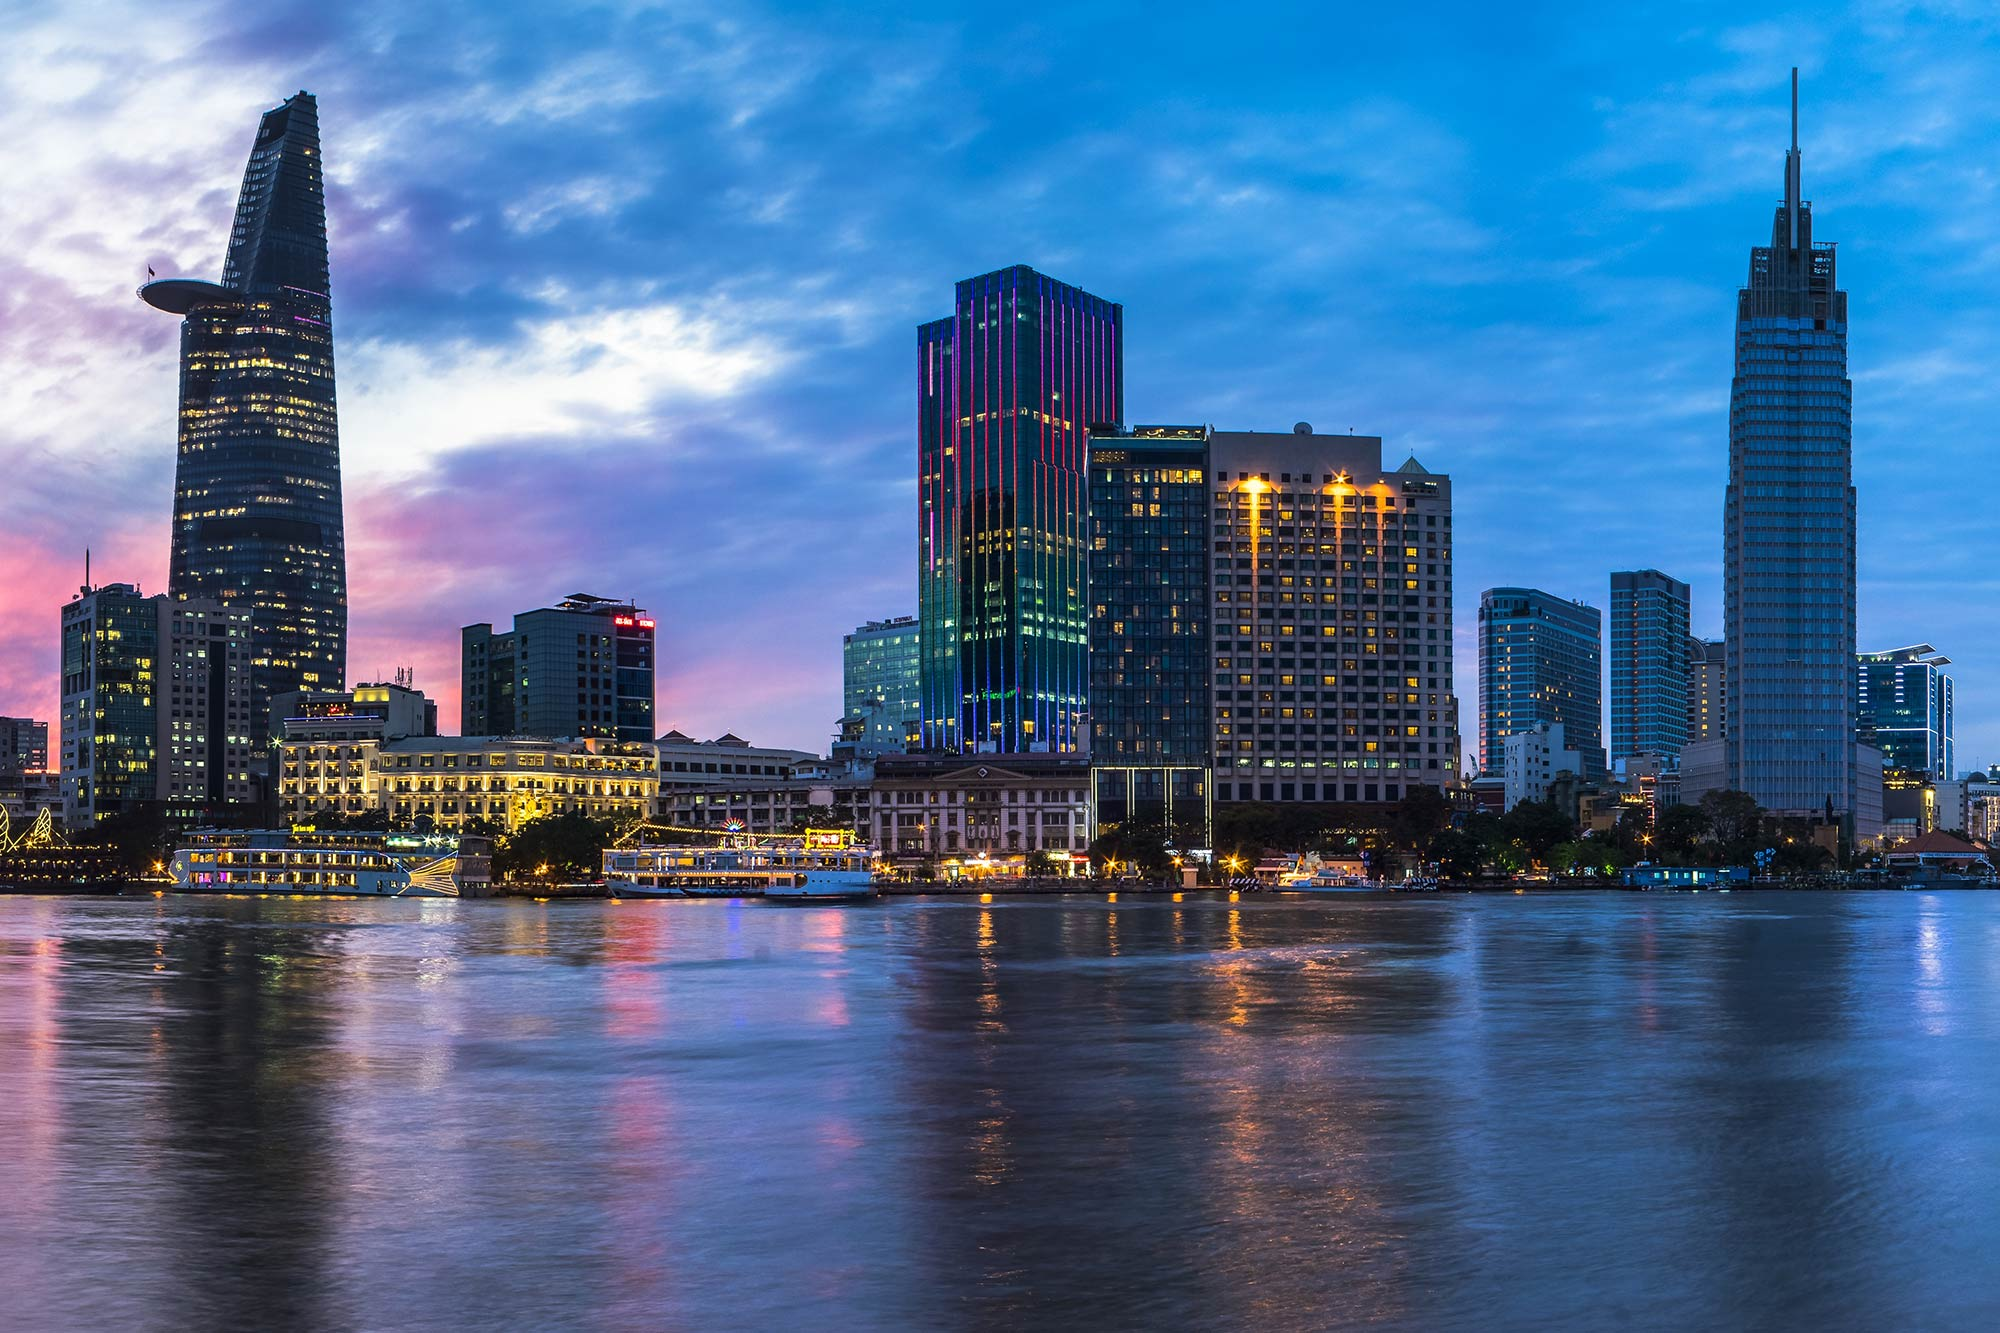 Best Spots To See The Sunrise And Sunset In Ho Chi Minh City